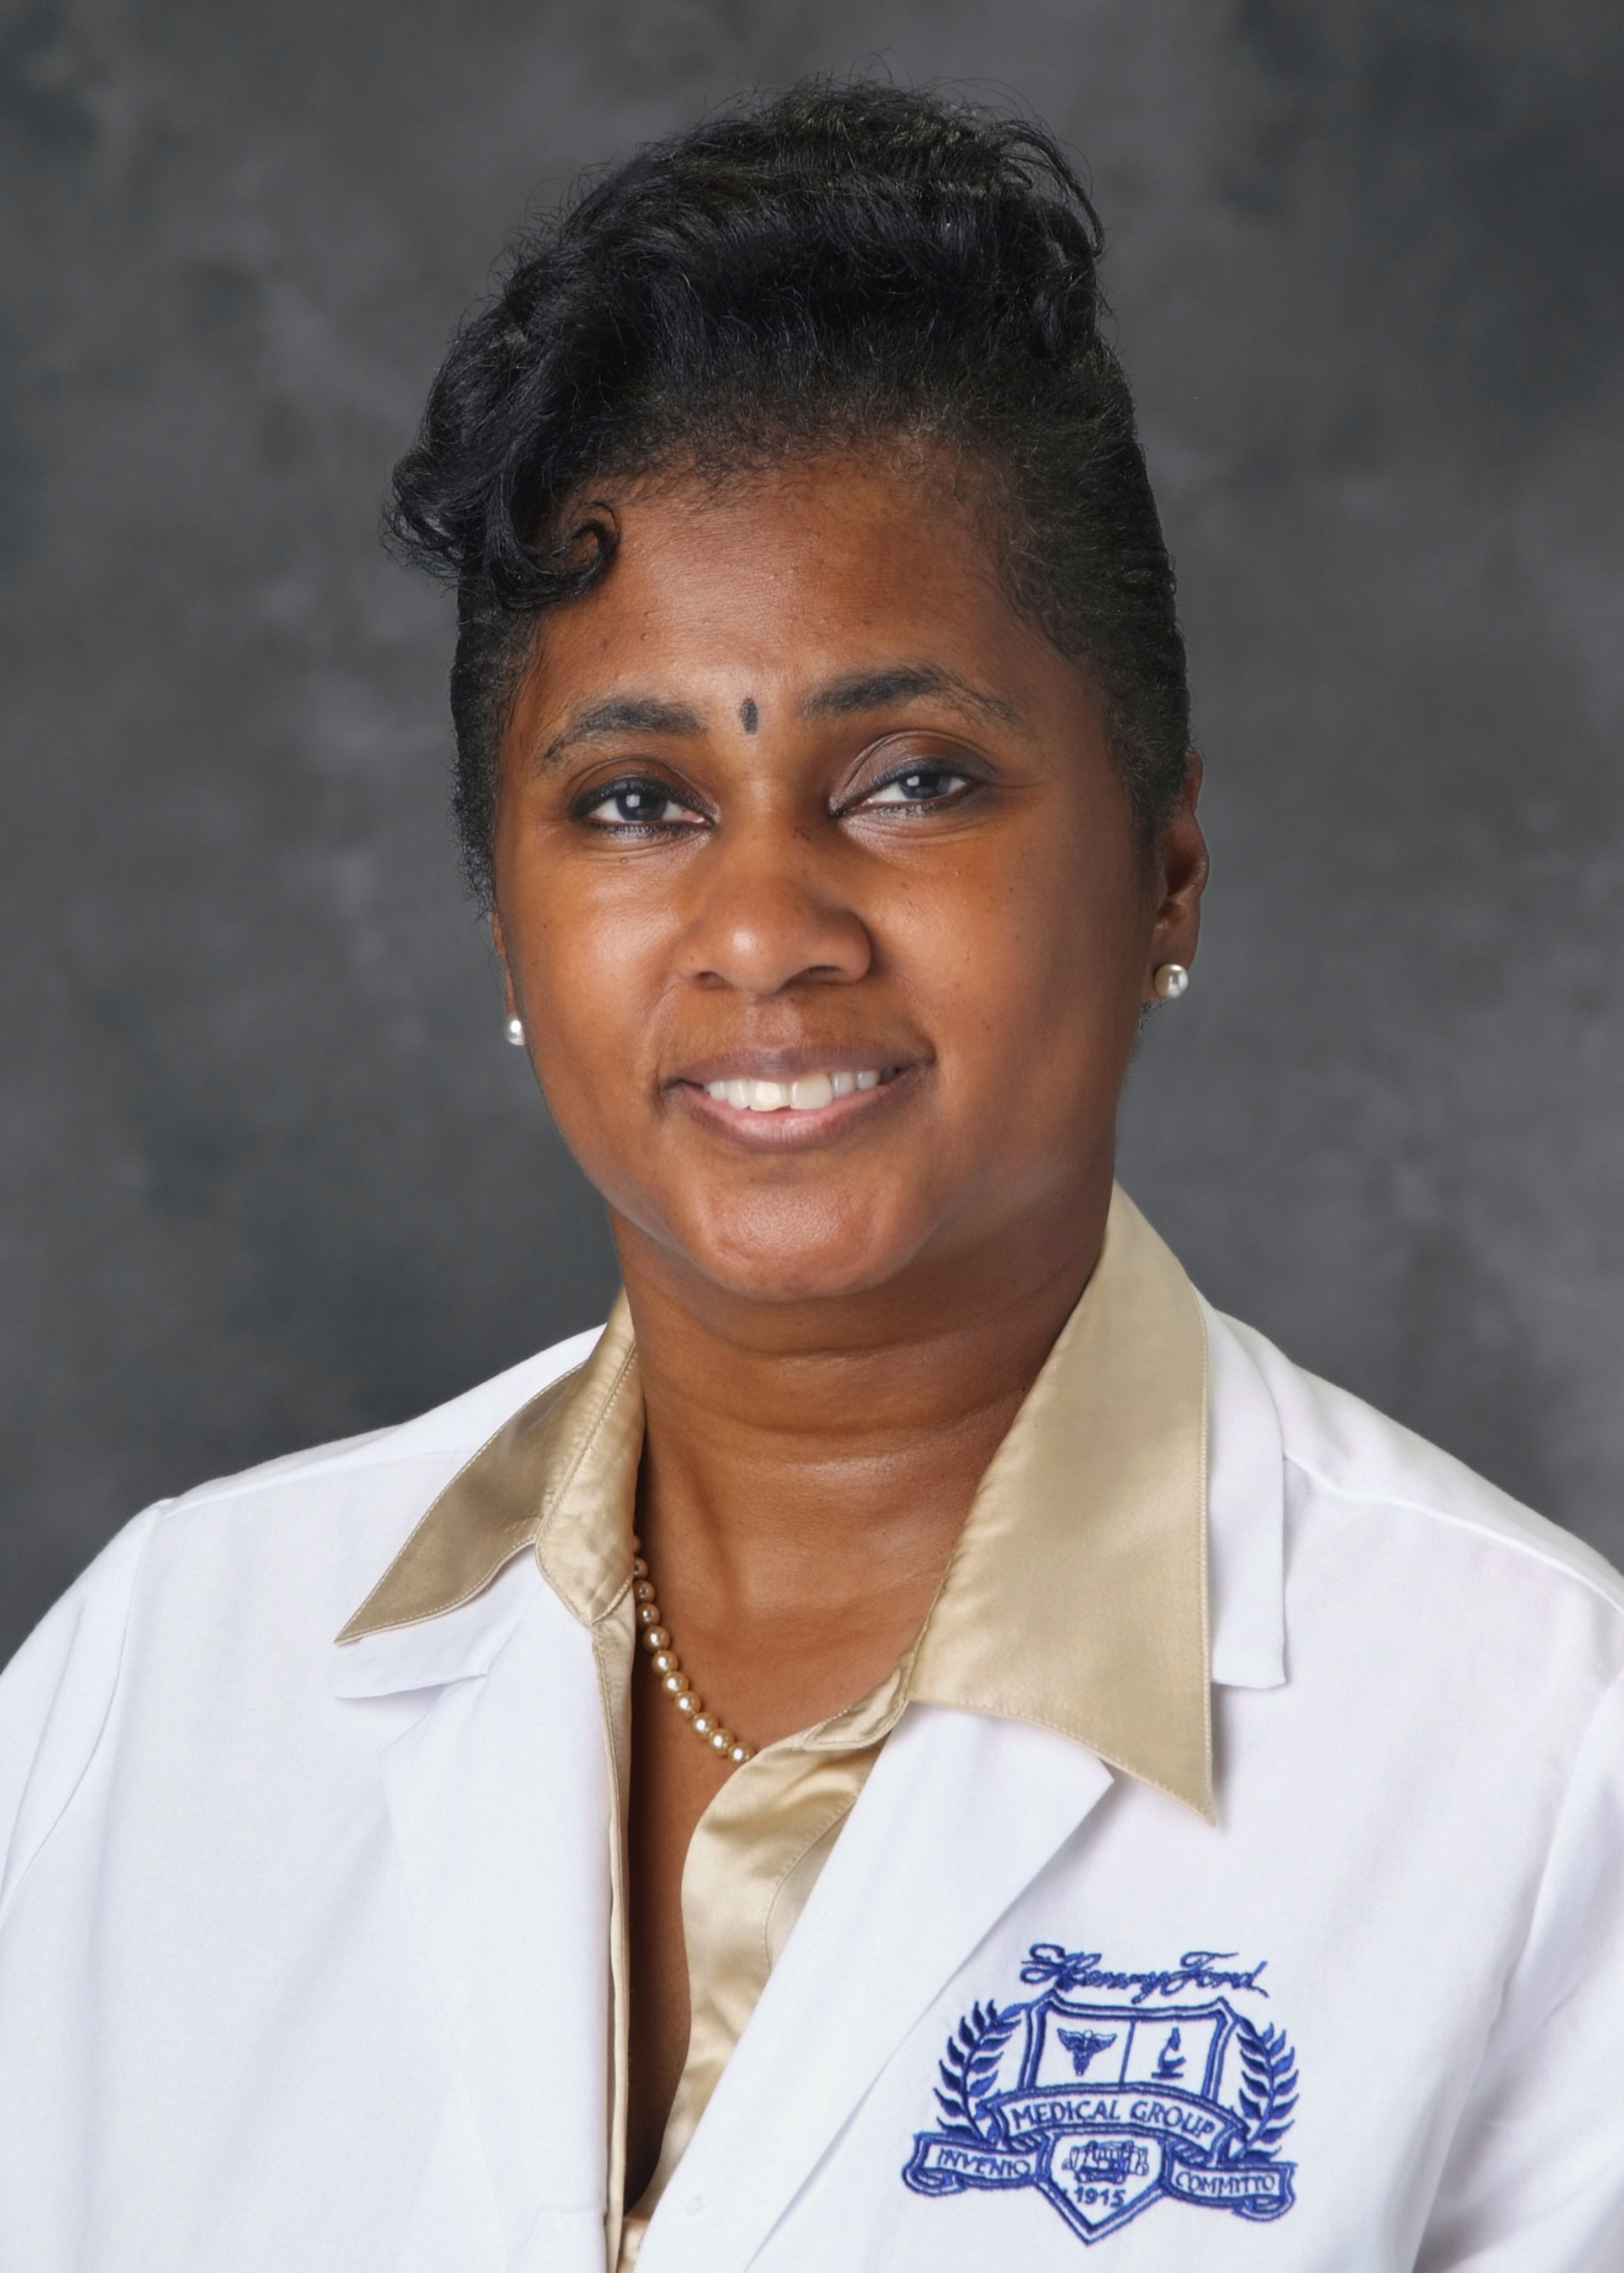 Kimberlydawn Wisdom, M.D., senior vice president of Community Health & Equity and chief wellness & diversity officer, Henry Ford Health System